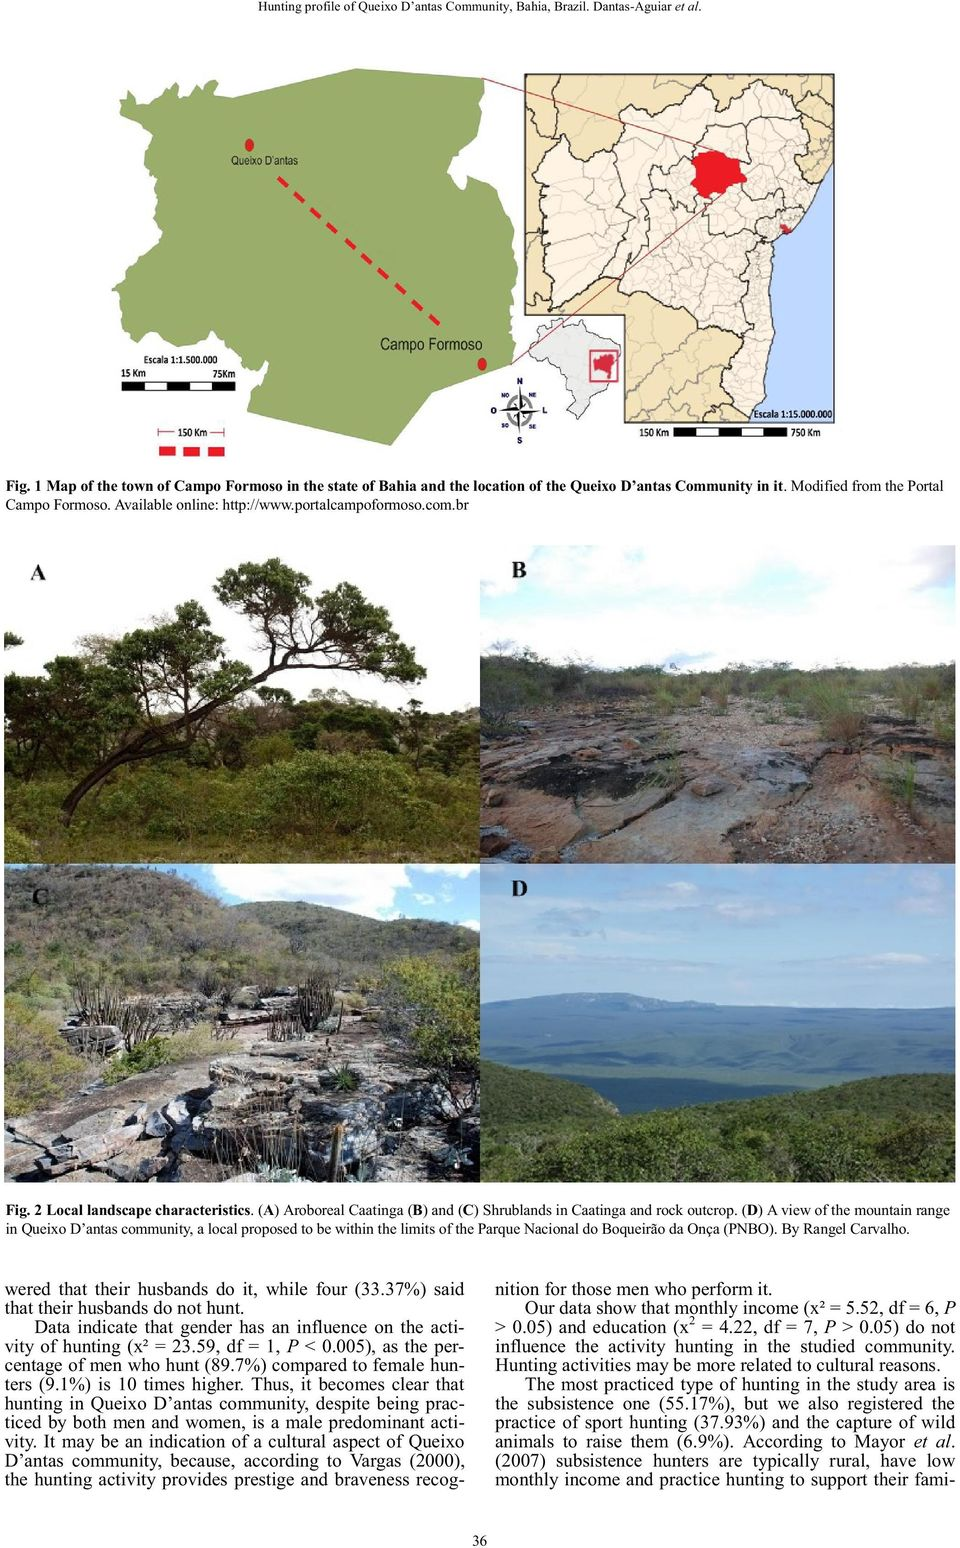 (A) Aroboreal Caatinga (B) and (C) Shrublands in Caatinga and rock outcrop.